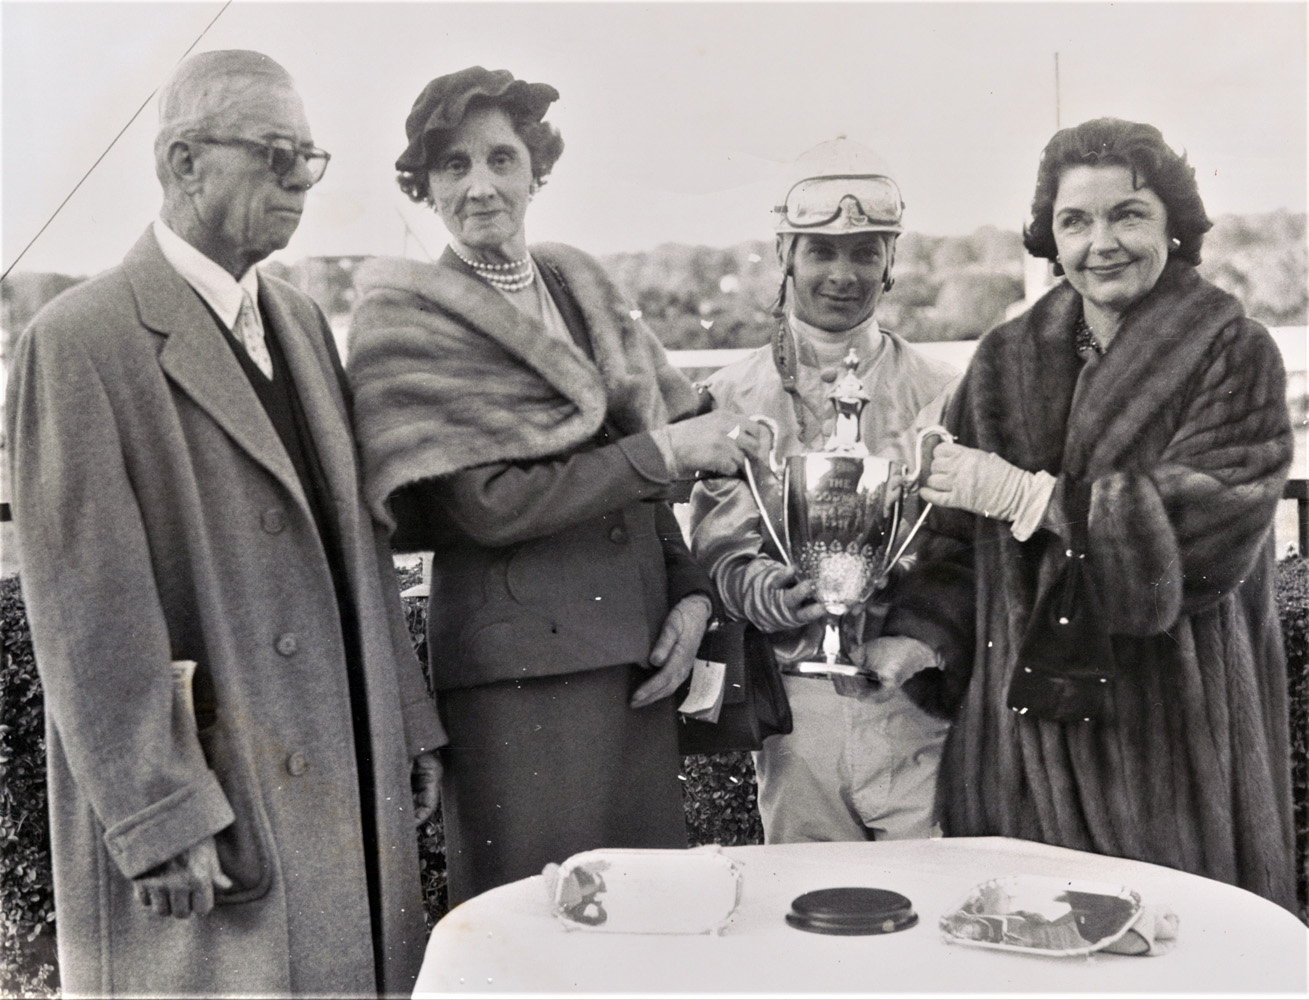 G. Carey Winfrey, Mrs. William Woodward, Sr., Bill Hartack, and Mrs. Jan Burke at a trophy presentation (Keeneland Library Morgan Collection)